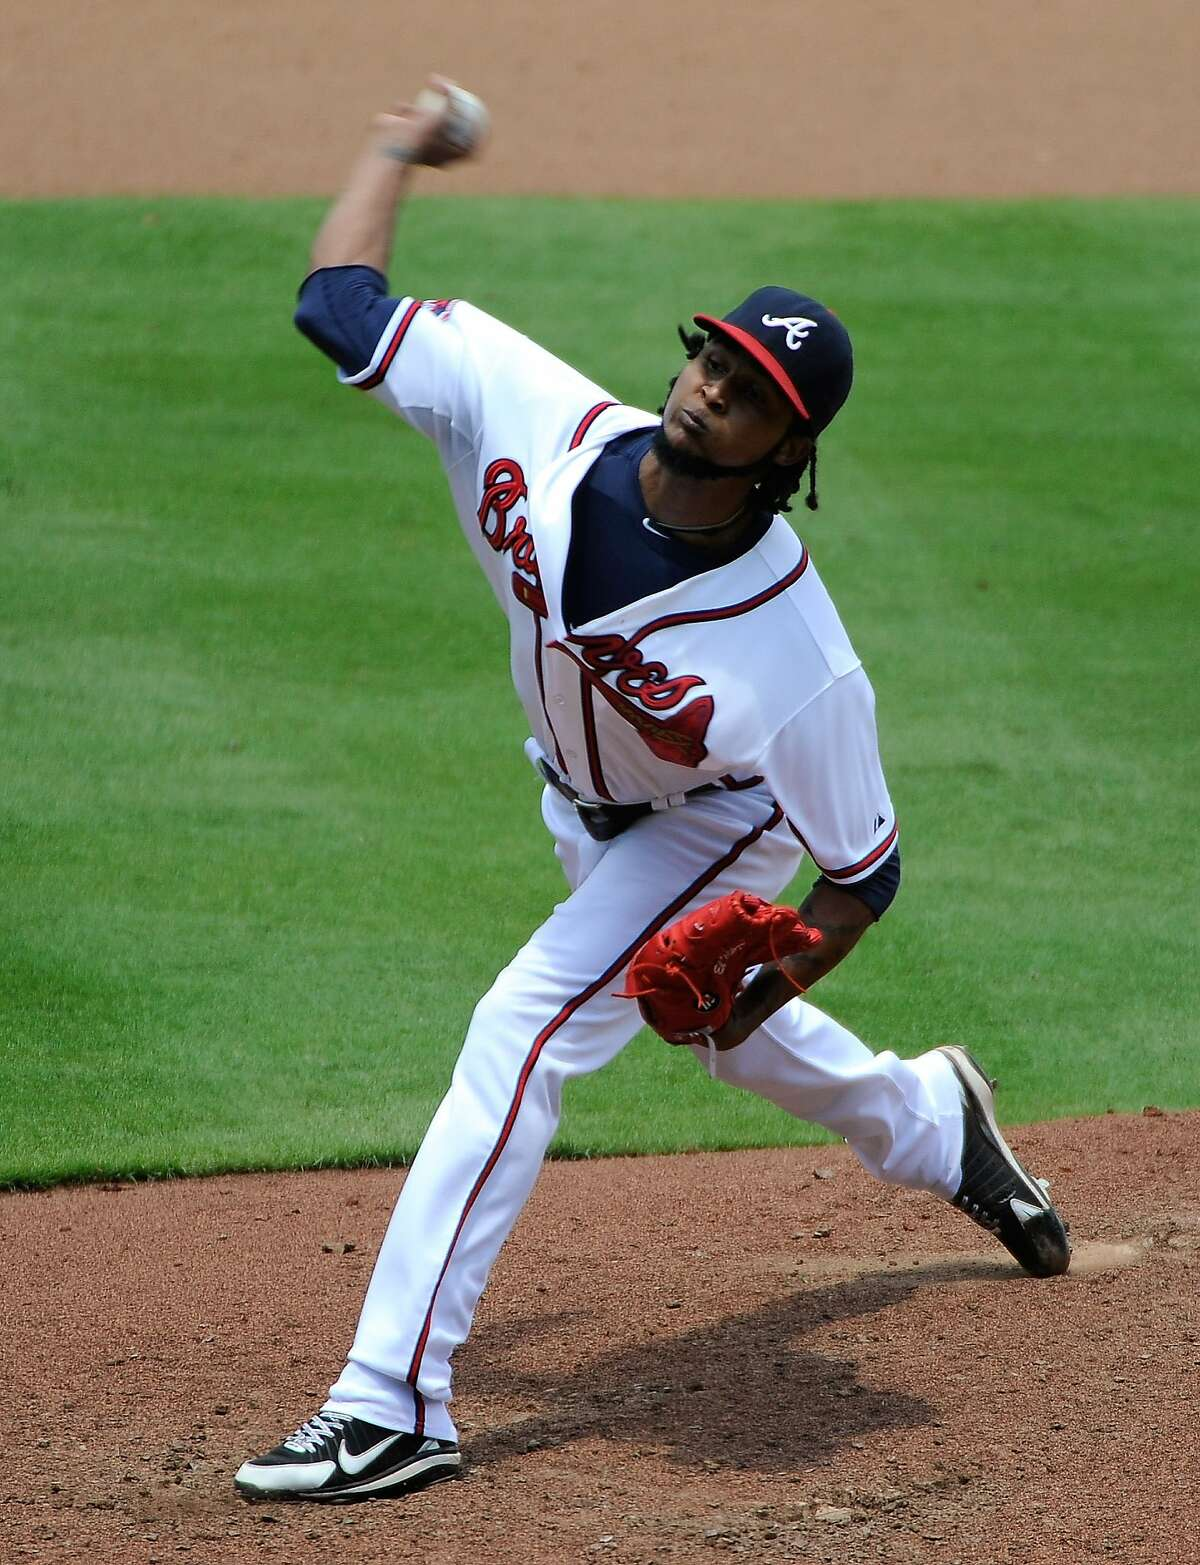 Atlanta Braves starting pitcher Ervin Santana delivers to the San Diego Padres during the seventh inning of a baseball game Monday, July 28, 2014, in Atlanta. (AP Photo/David Tulis)